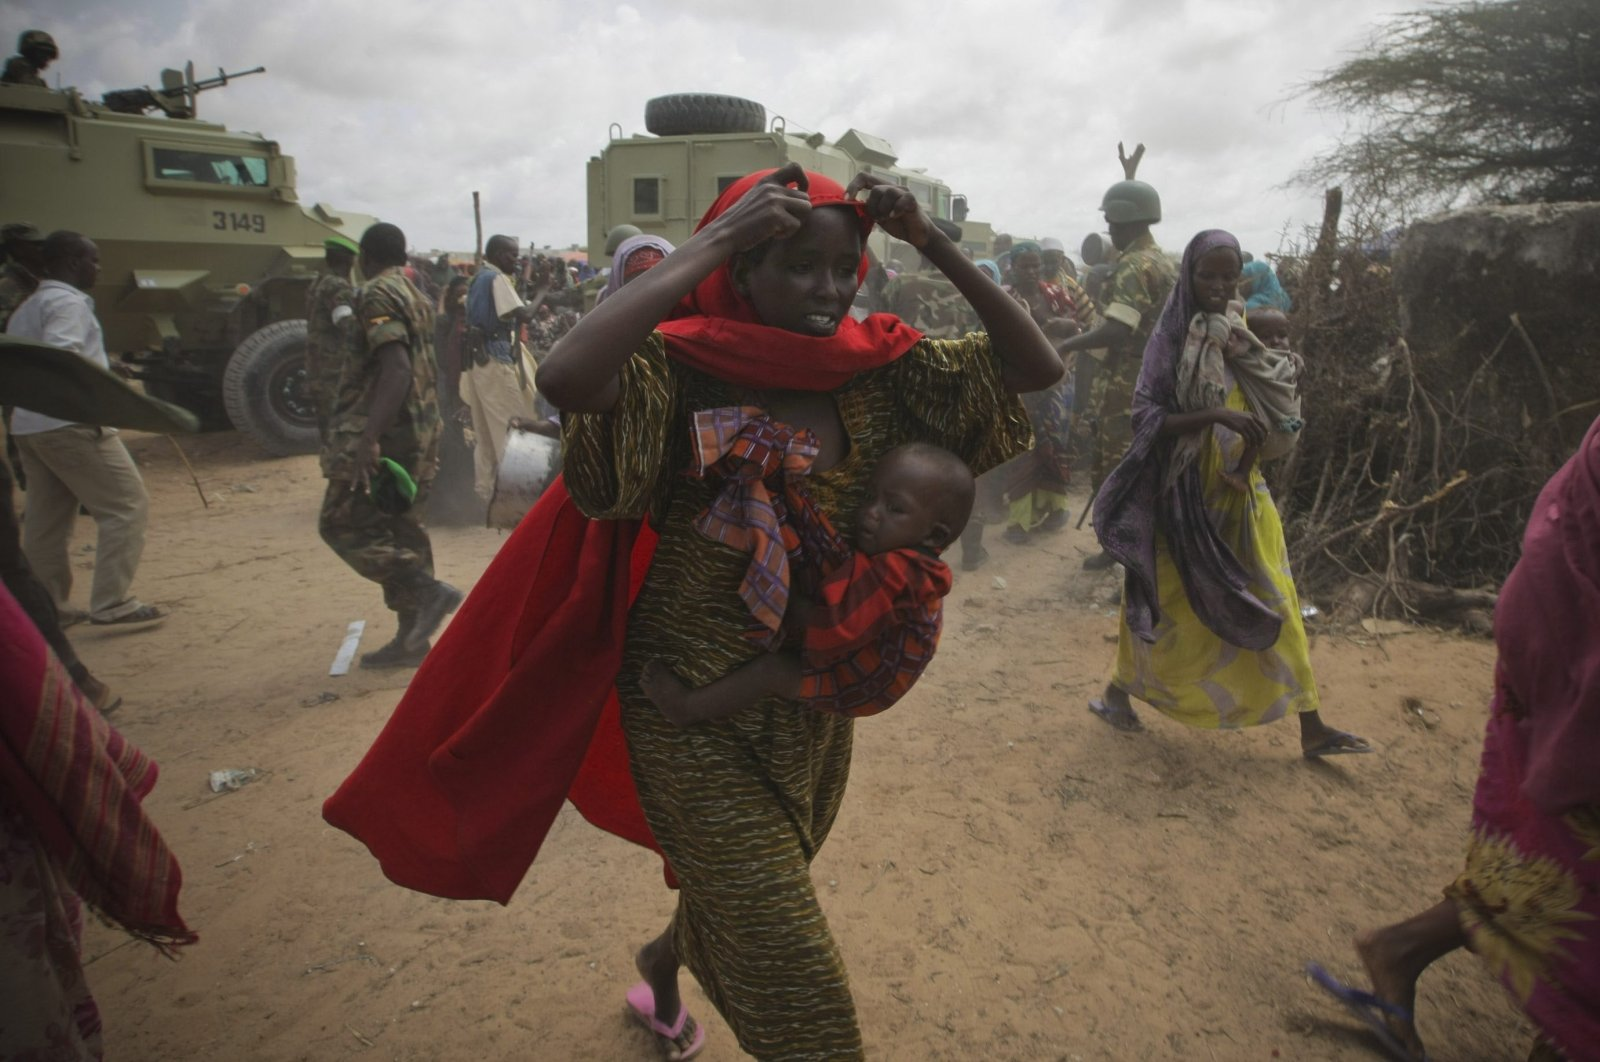 Women rush into a feeding center in a camp established by the Somali Transitional Federal Government (TFG) for internally displaced people, Mogadishu, Somalia, July 20, 2011. (Reuters Photo)